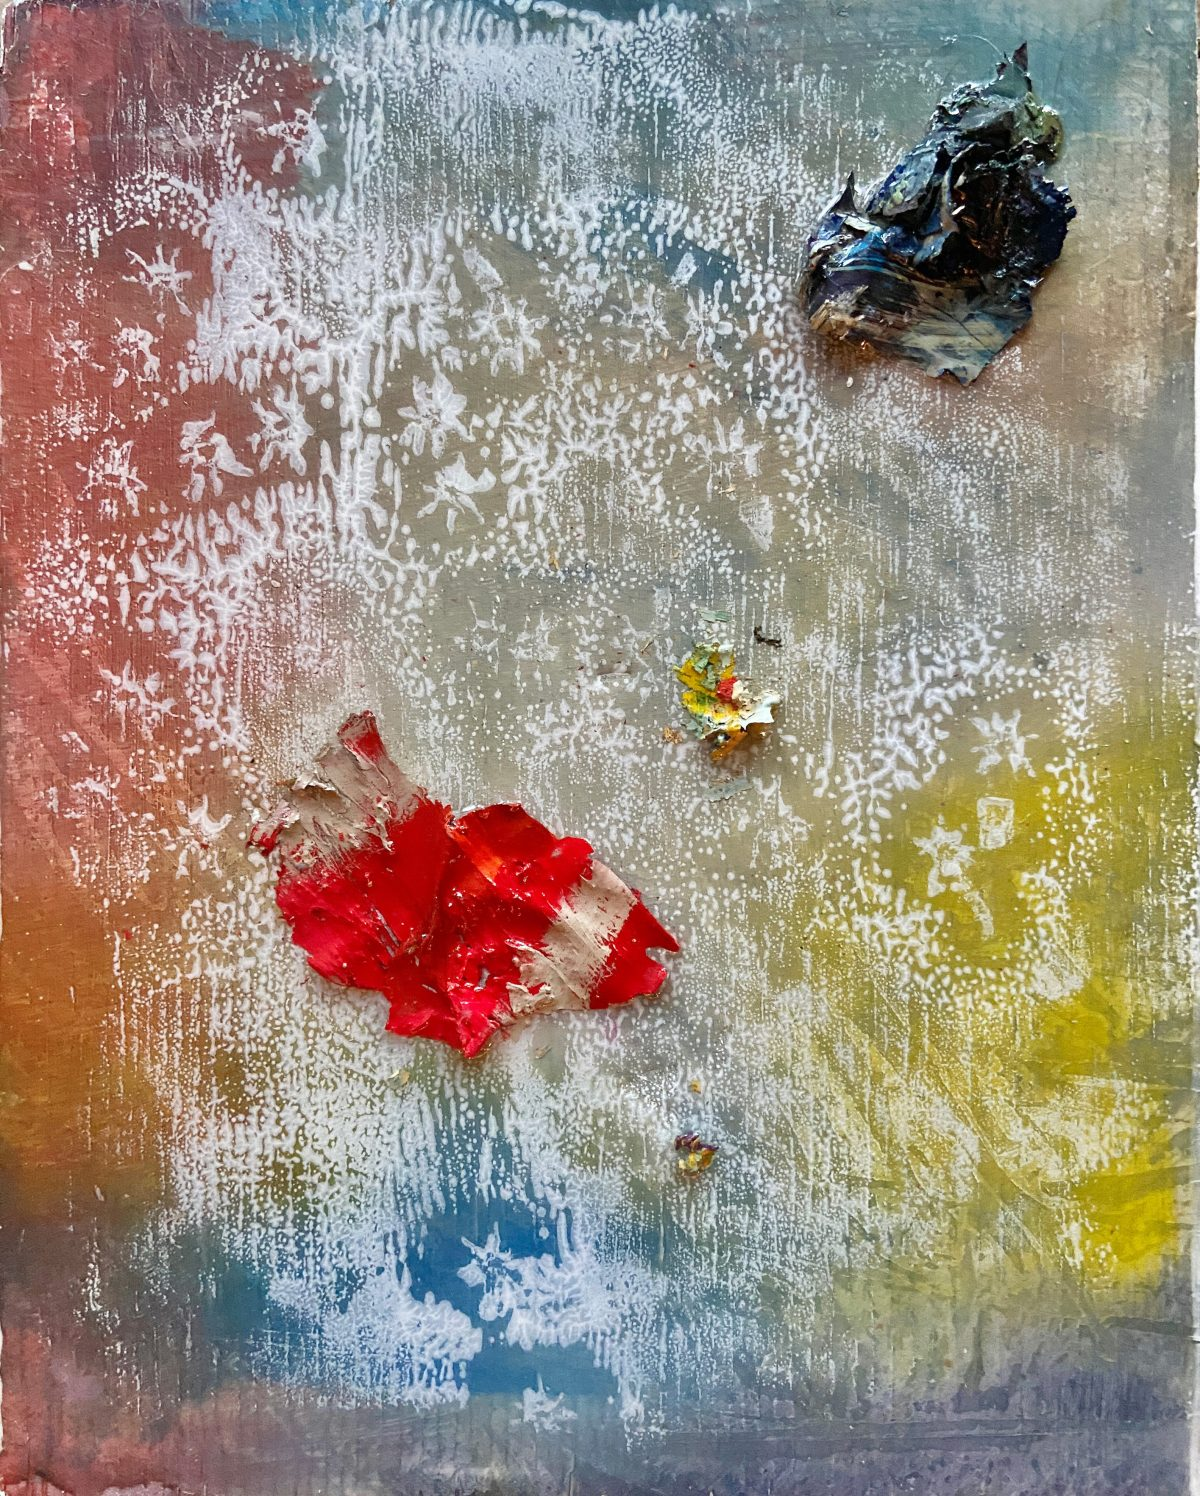 Primary Paint forms. Abstract contemporary mixed media oil painting